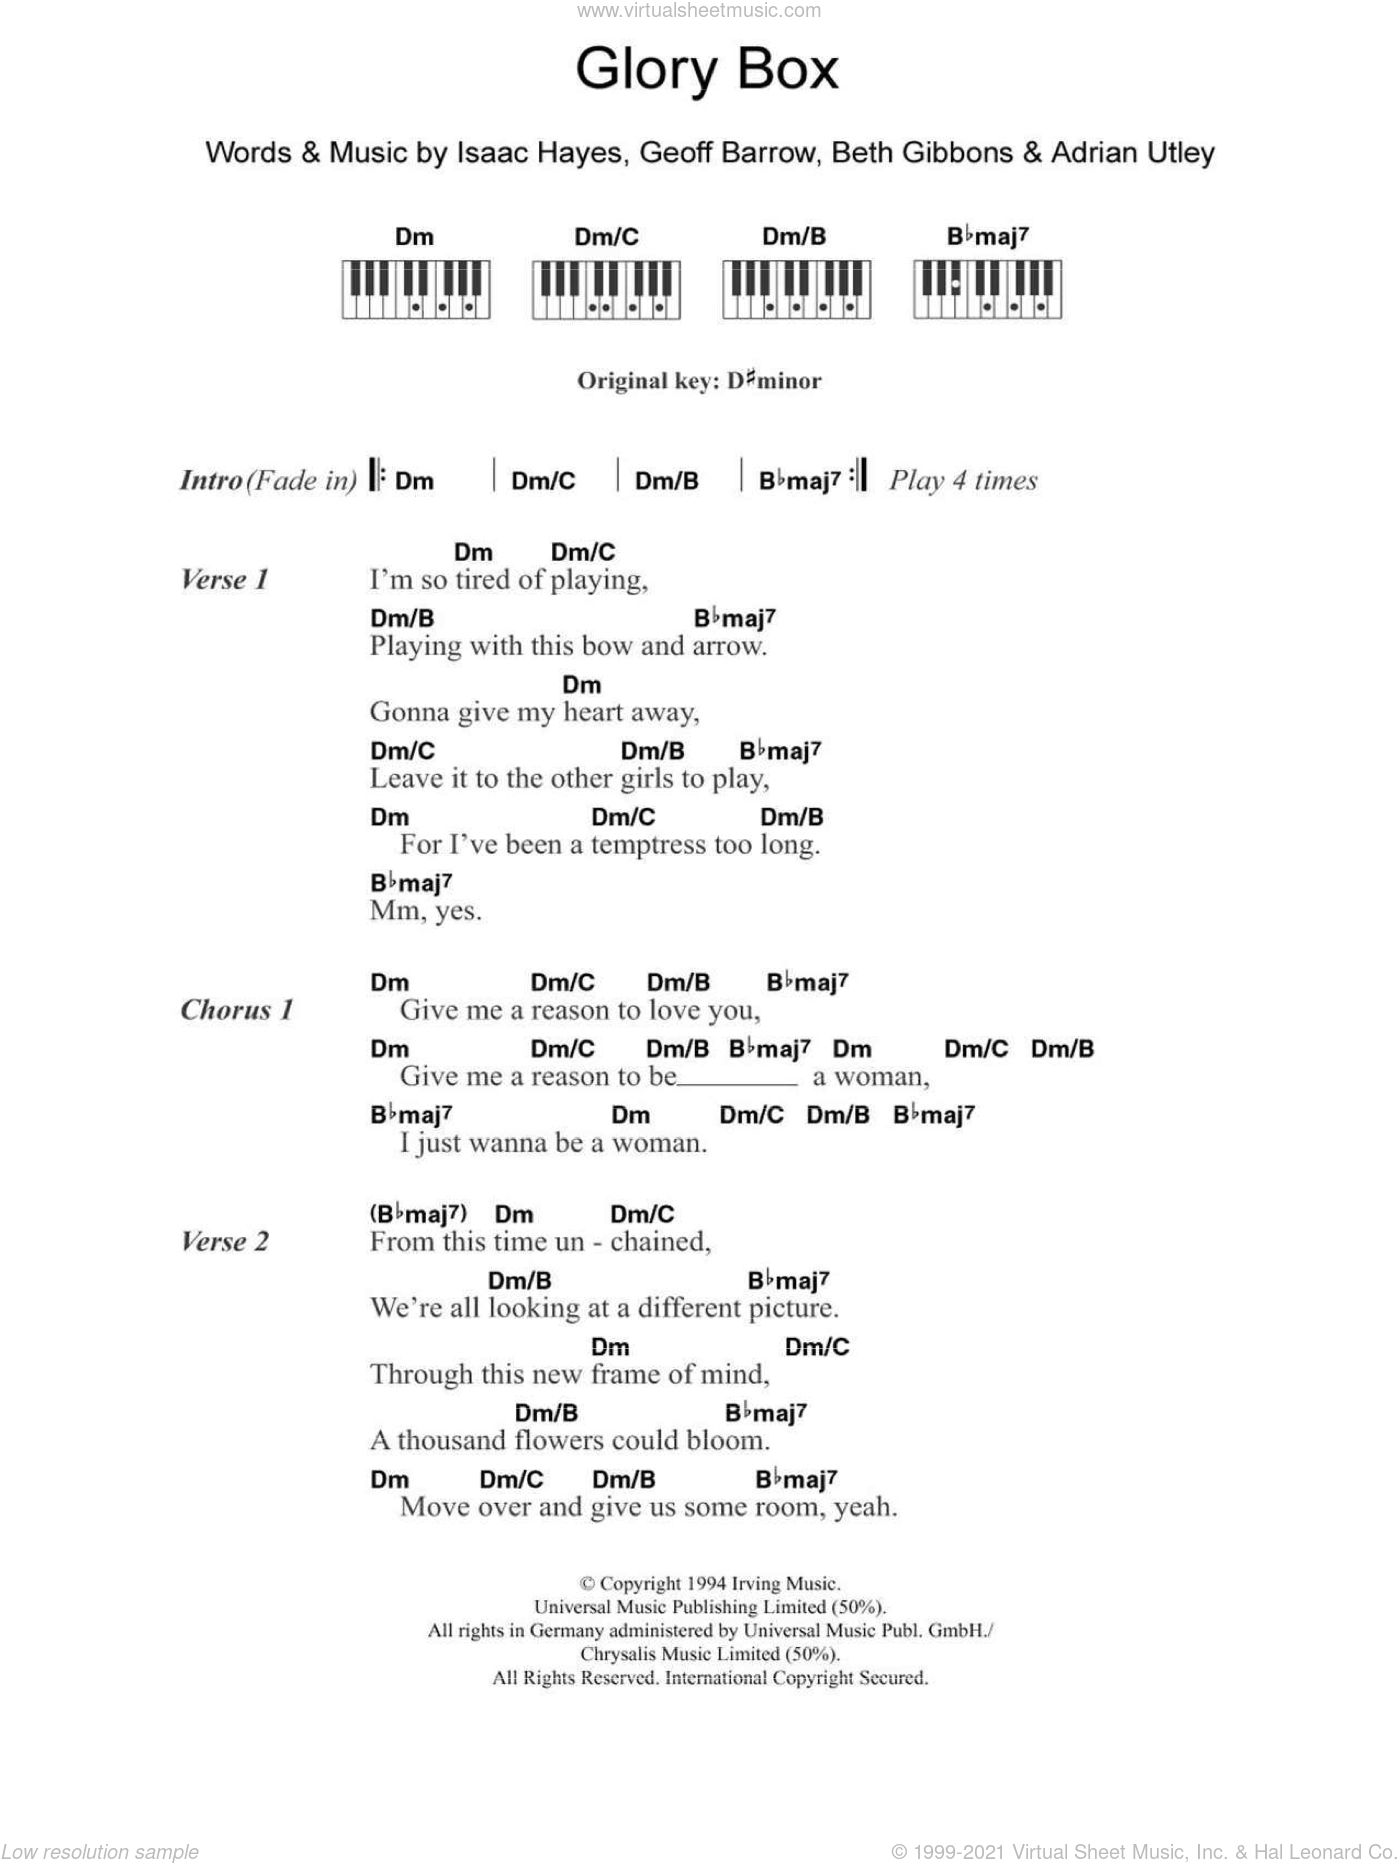 Glory Box sheet music for piano solo (chords, lyrics, melody) by Portishead, Adrian Utley, Beth Gibbons, Geoff Barrow and Isaac Hayes, intermediate piano (chords, lyrics, melody)